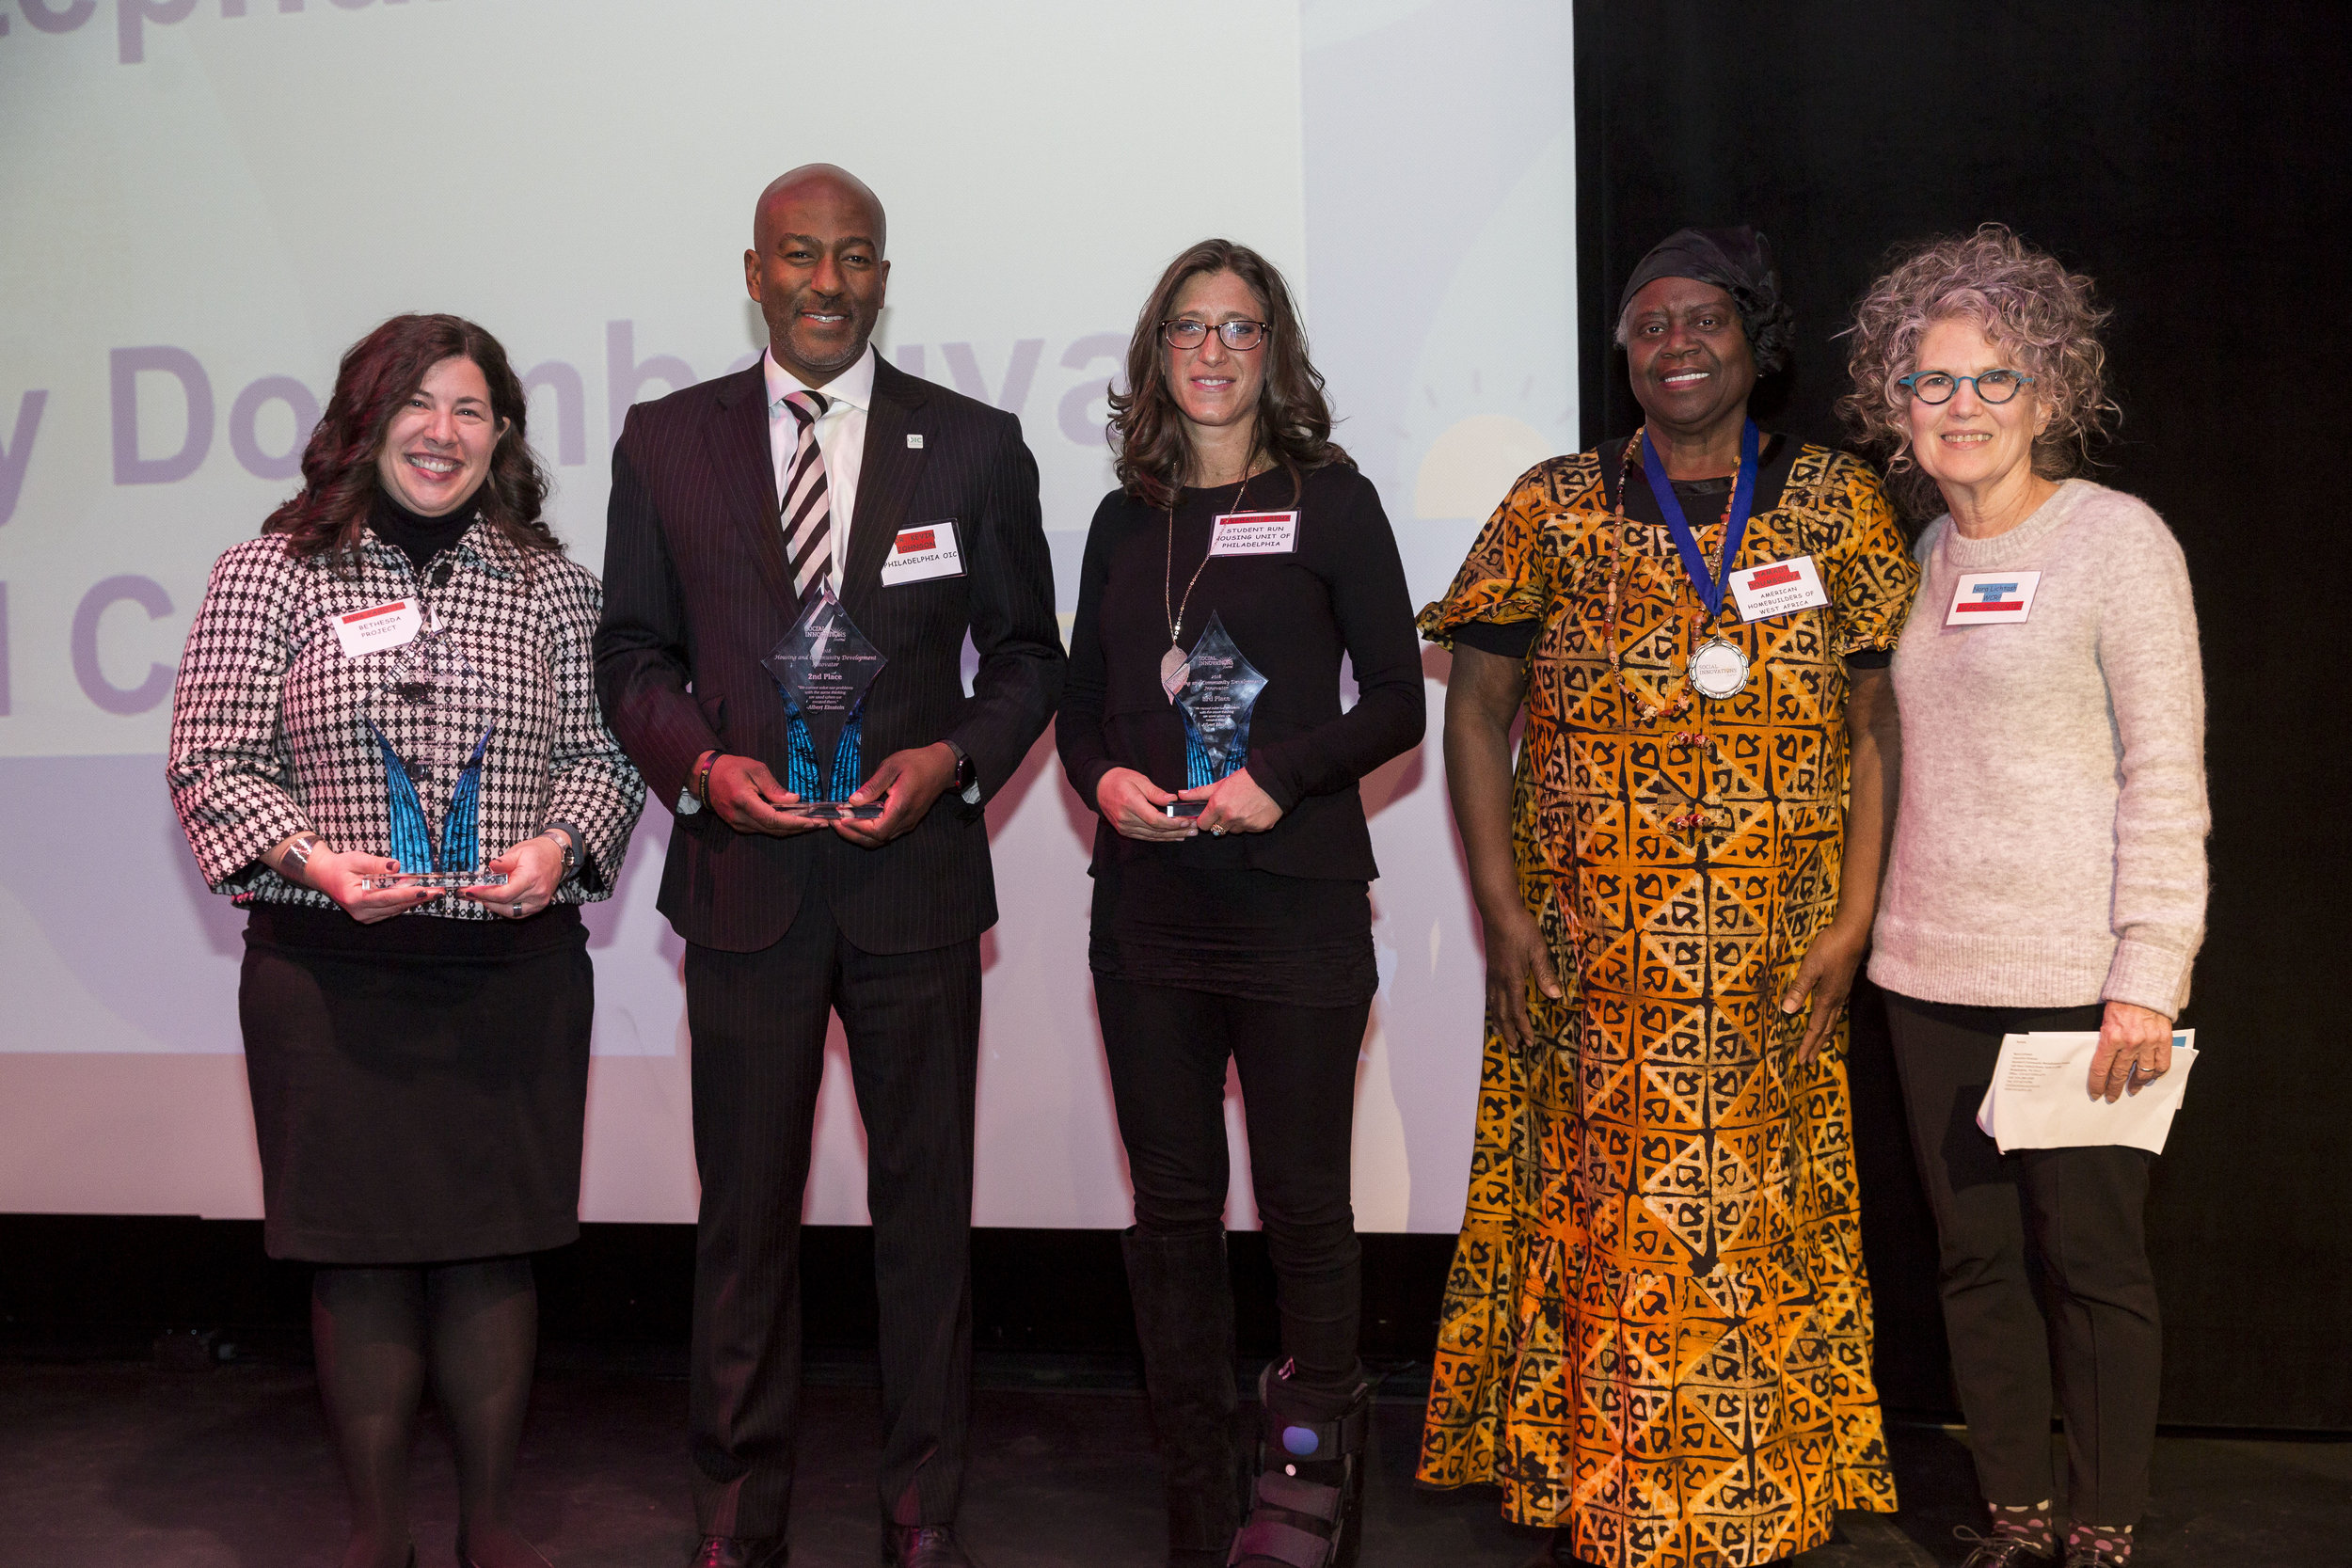 - HOUSING AND COMMUNITY DEVELOPMENT1st: TINA PAGOTTO, BETHESDA PROJECT 2nd: DR. KEVIN JOHNSON, PHILADELPHIA OIC 3rd: STEPHANIE SENA, STUDENT RUN HOUSING UNIT OF PHILADELPHIA4th - 5th: MAMADY DOUMBOUYA, AMERICAN HOMEBUILDERS OF WEST AFRICA & BRAD COPELAND, MT. AIRY CDC